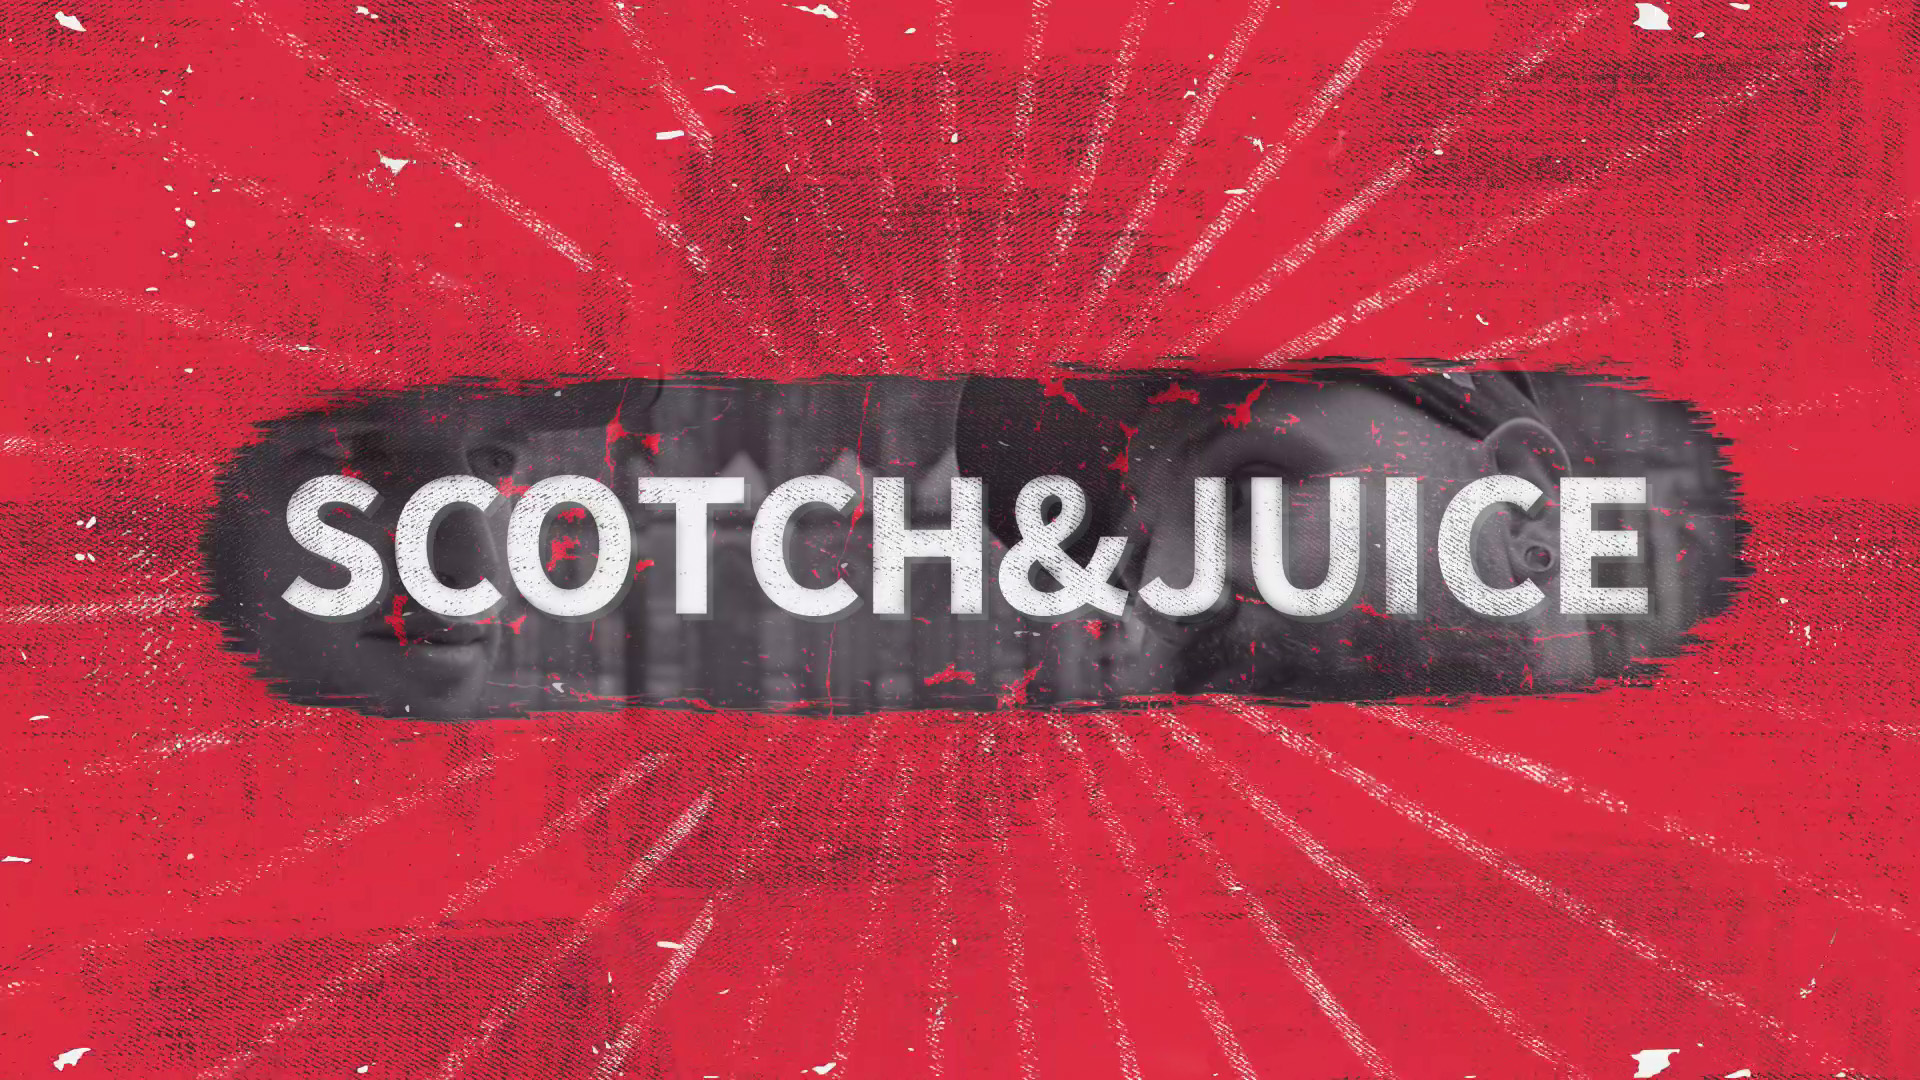 Scotch & Juice